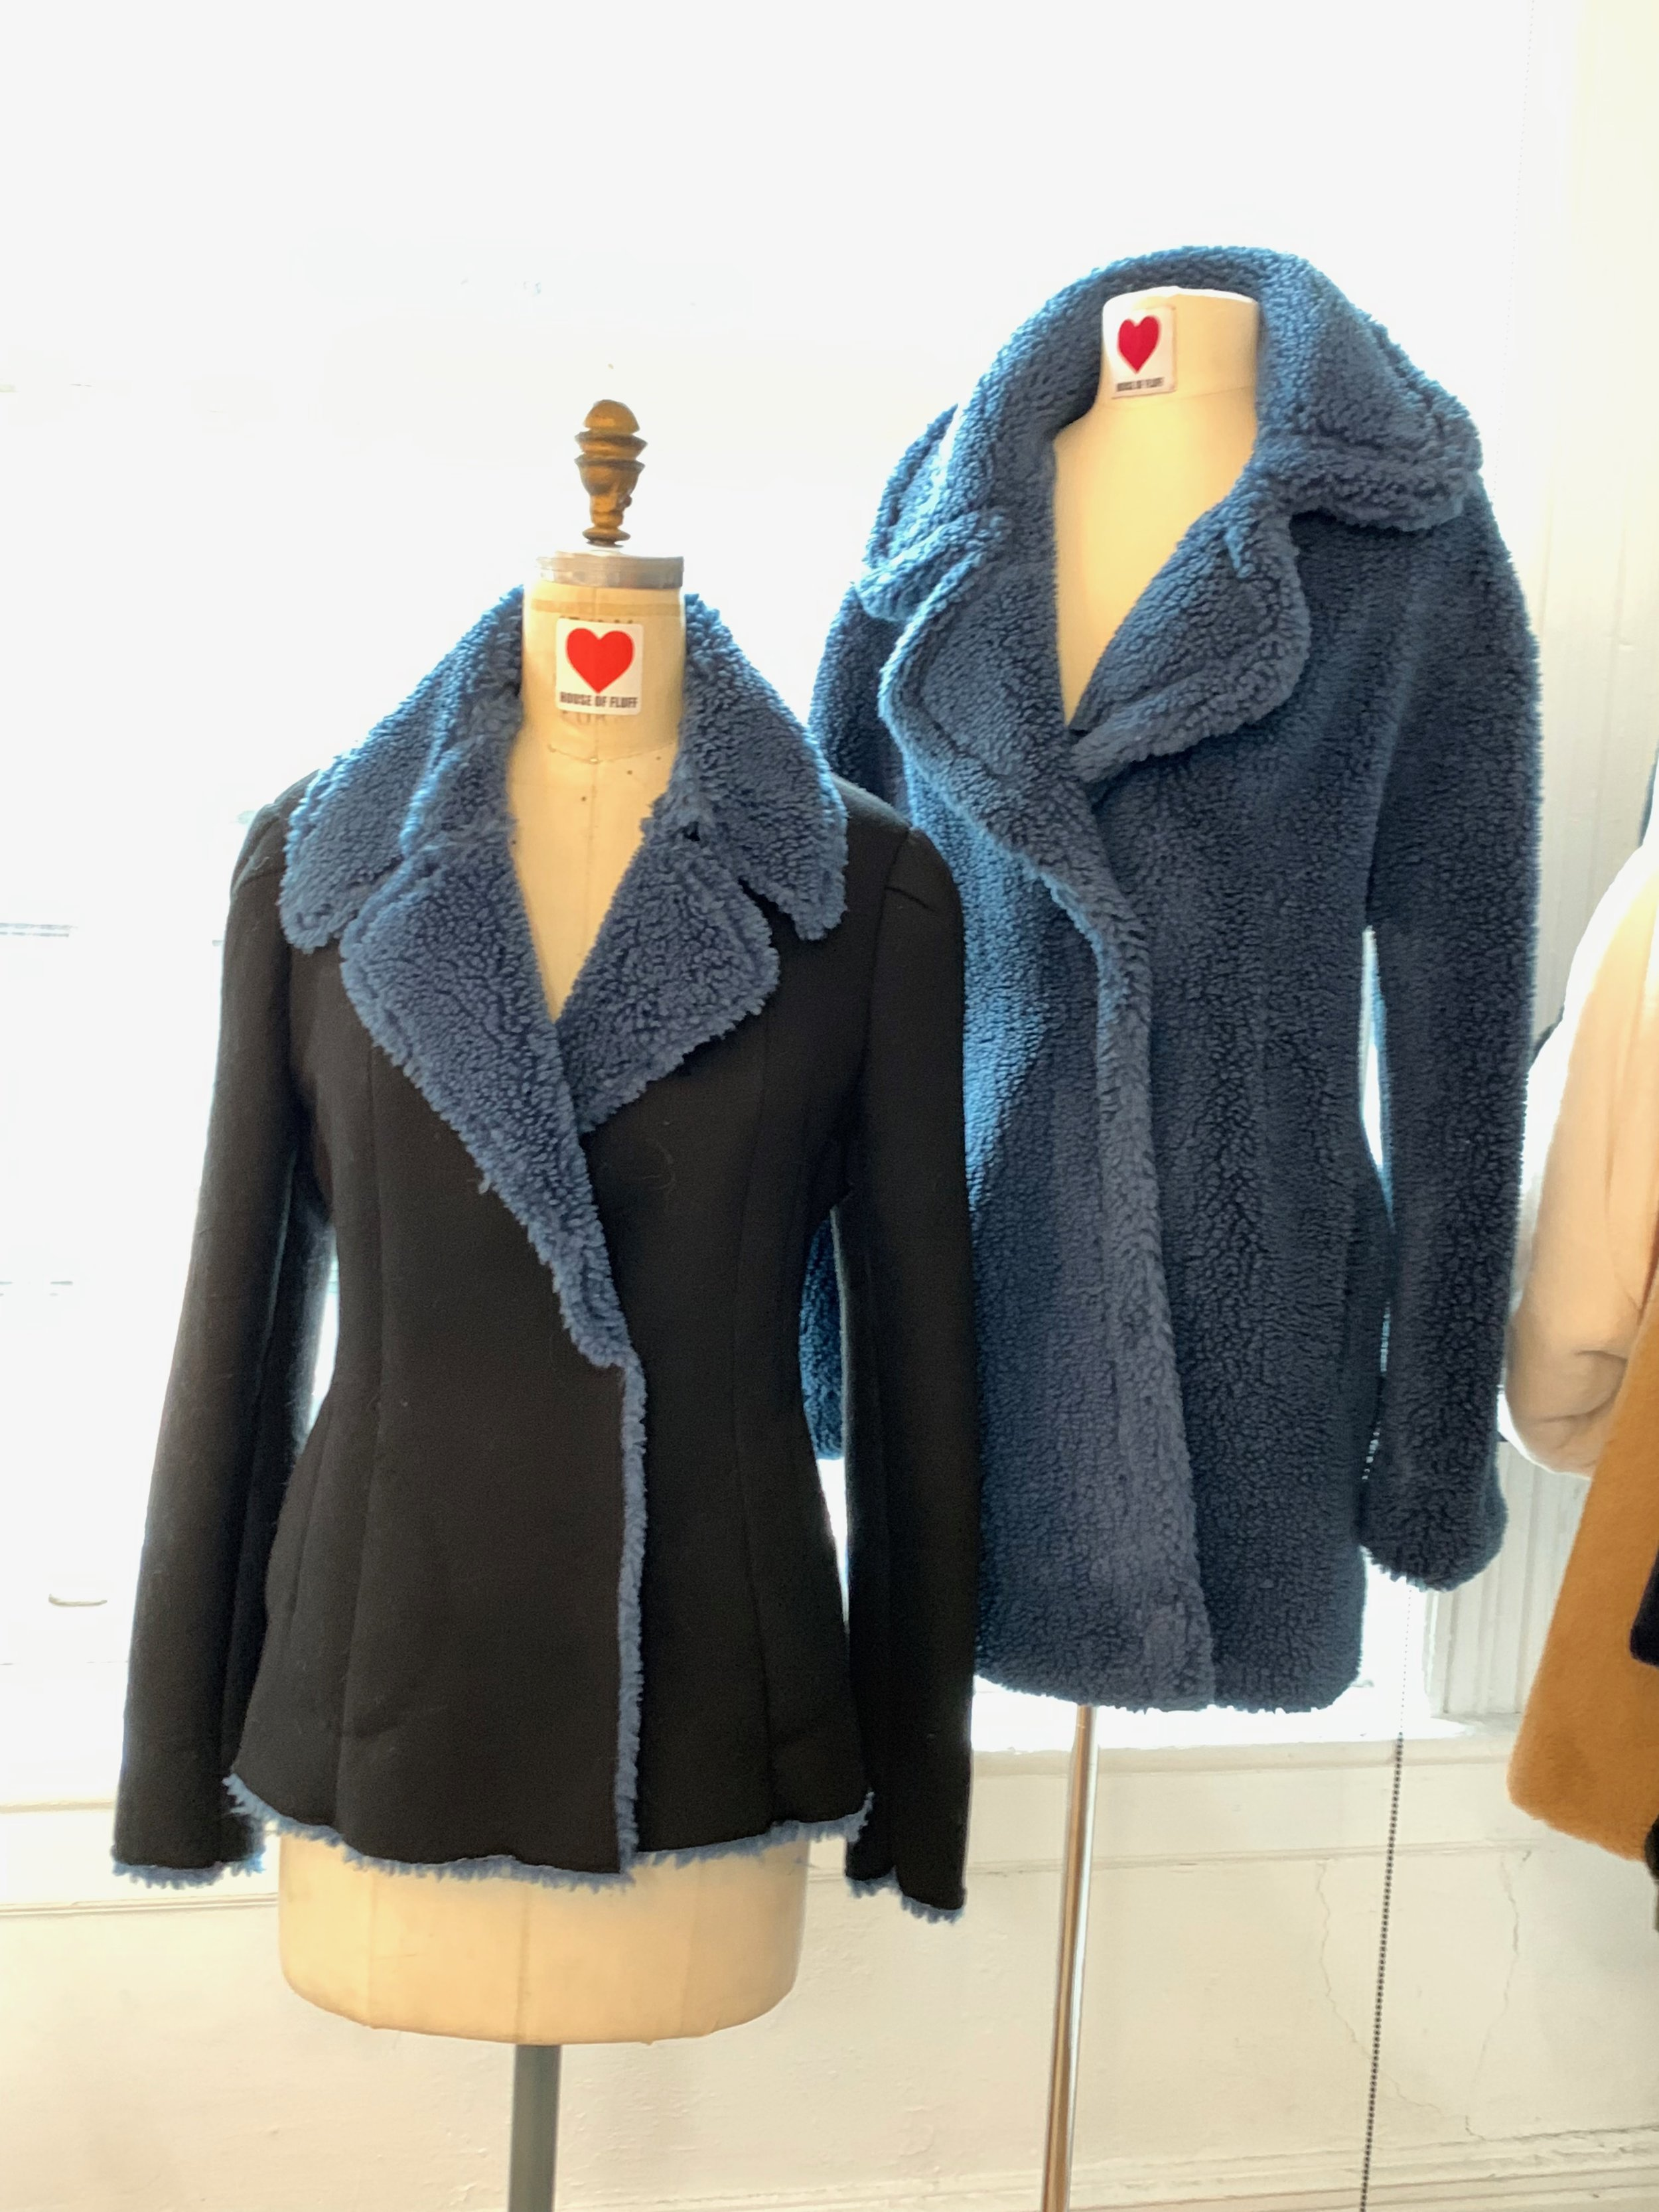 These chic fitted jackets made from ocean plastic and other recycled materials.